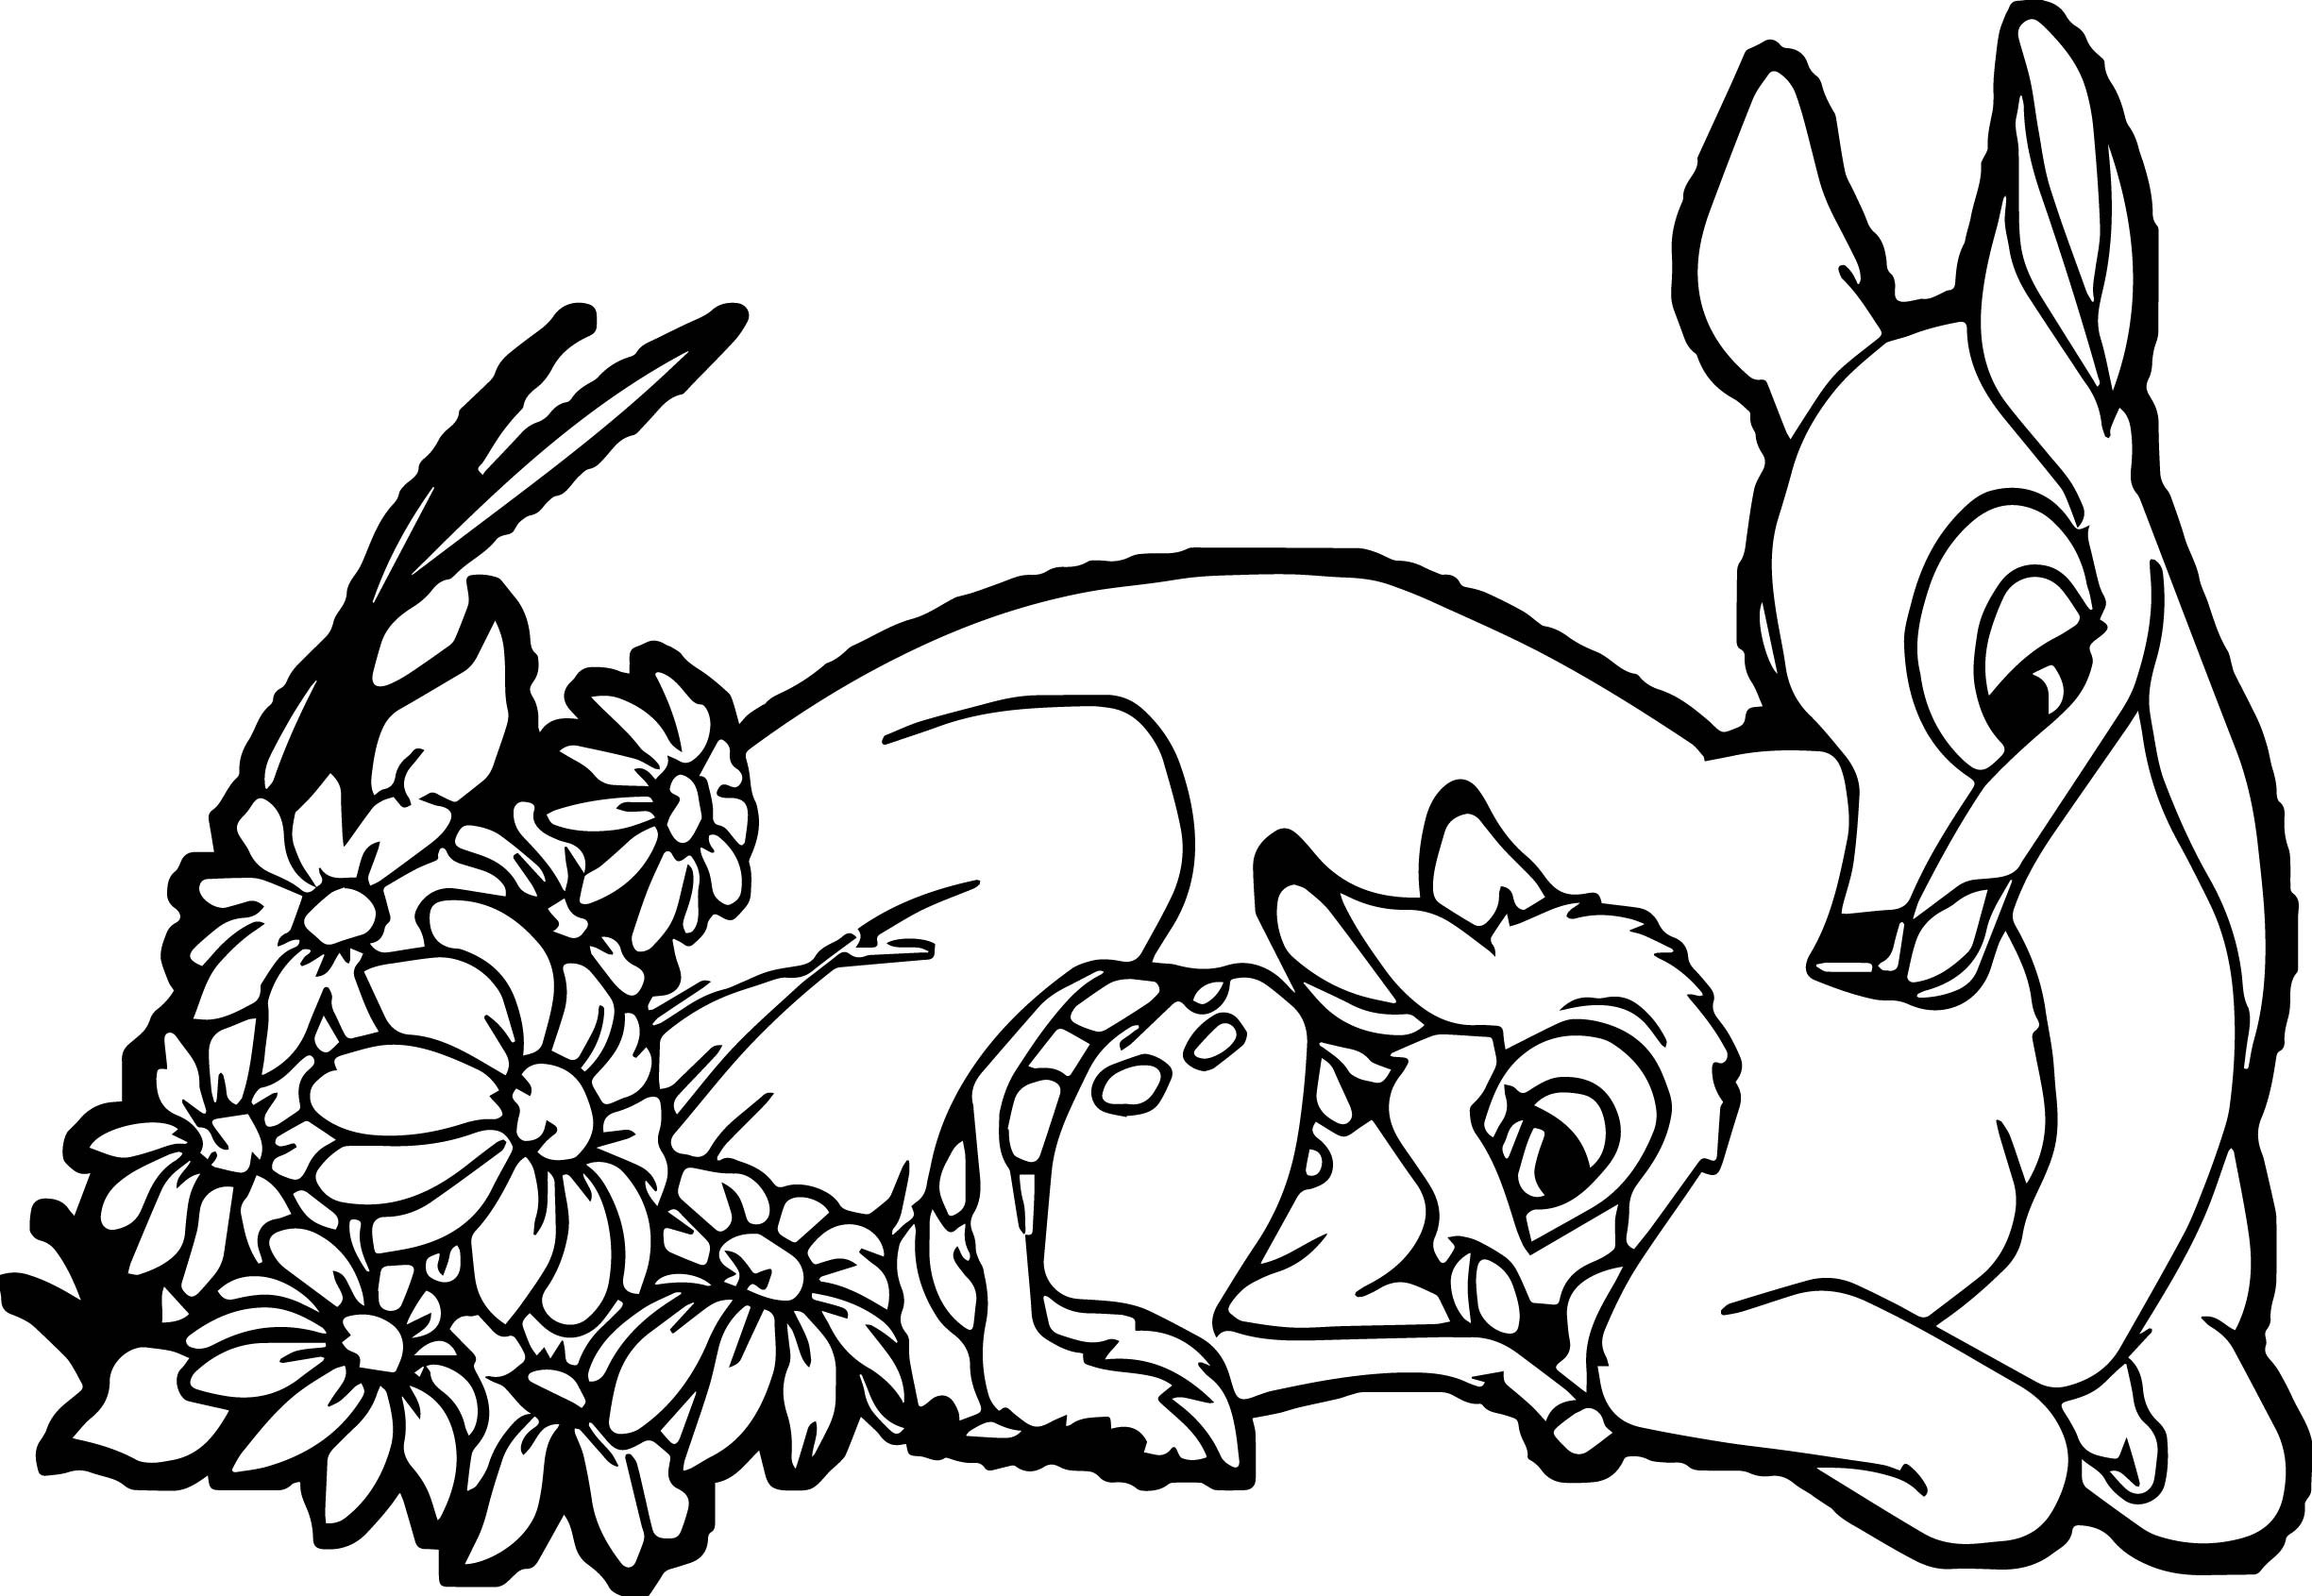 2449x1691 Bambi Coloring Pages With Frog For Kids Best Of Happy Bambi Mother